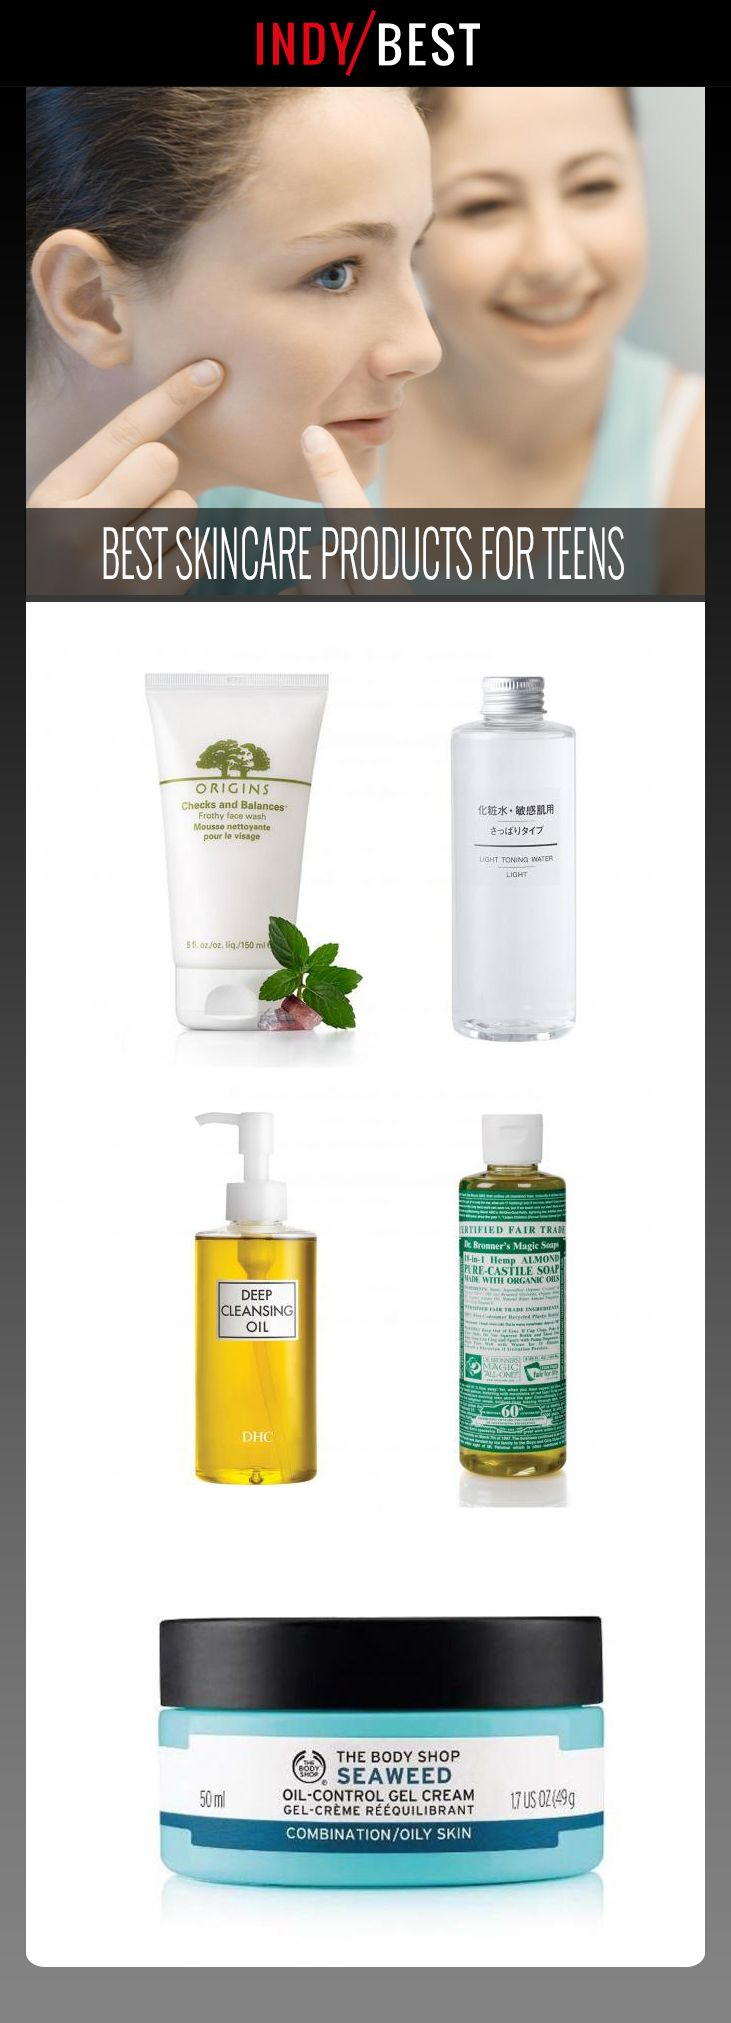 13 best skincare products for teens to reduce excess oil